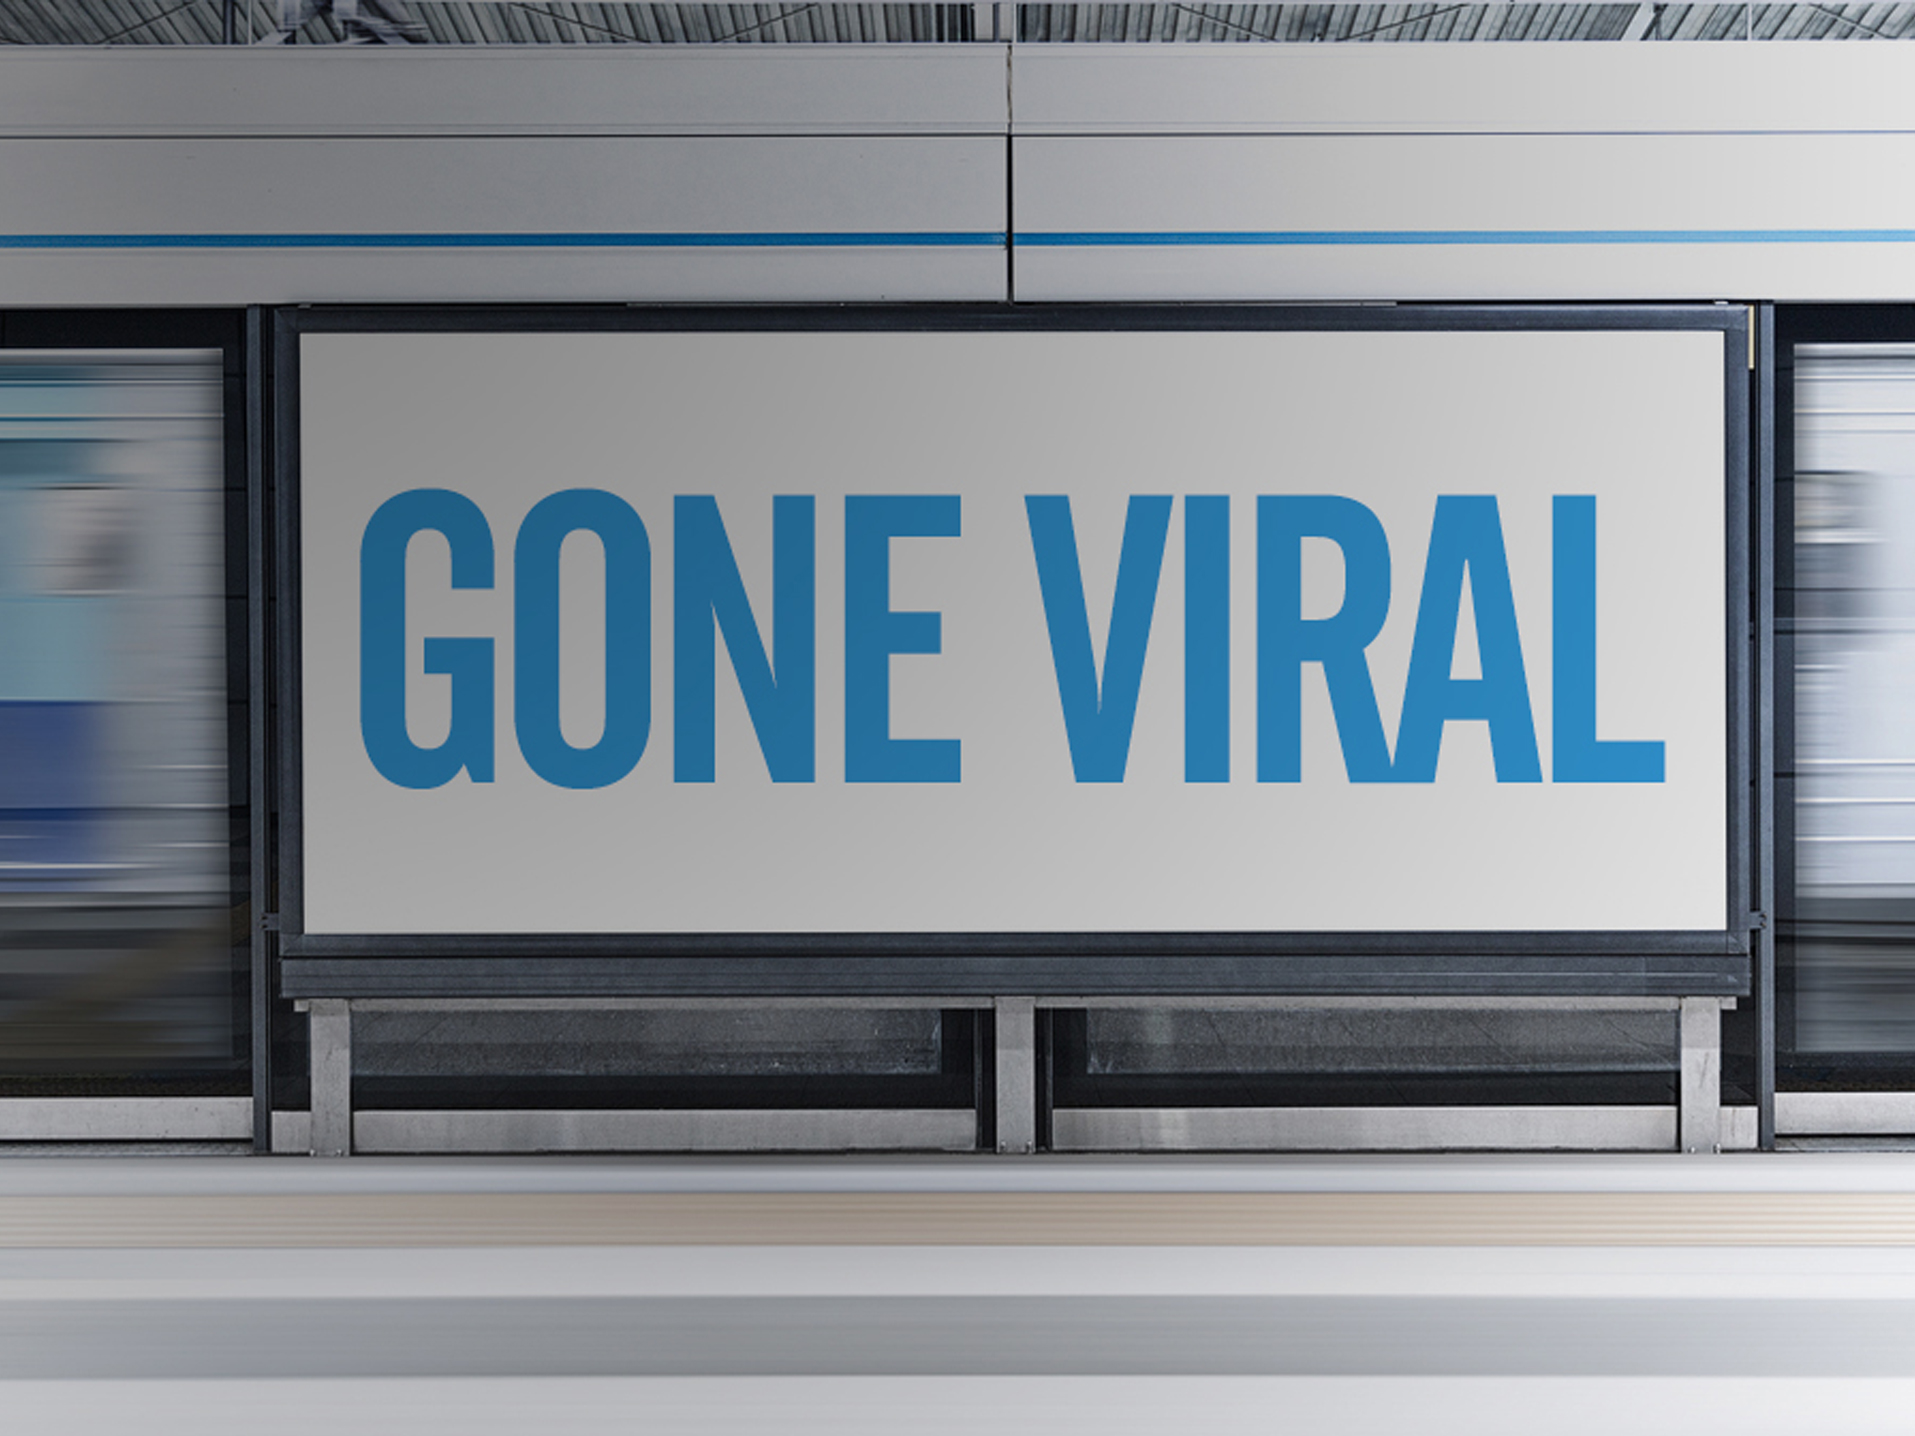 Gone viral ad in subway station